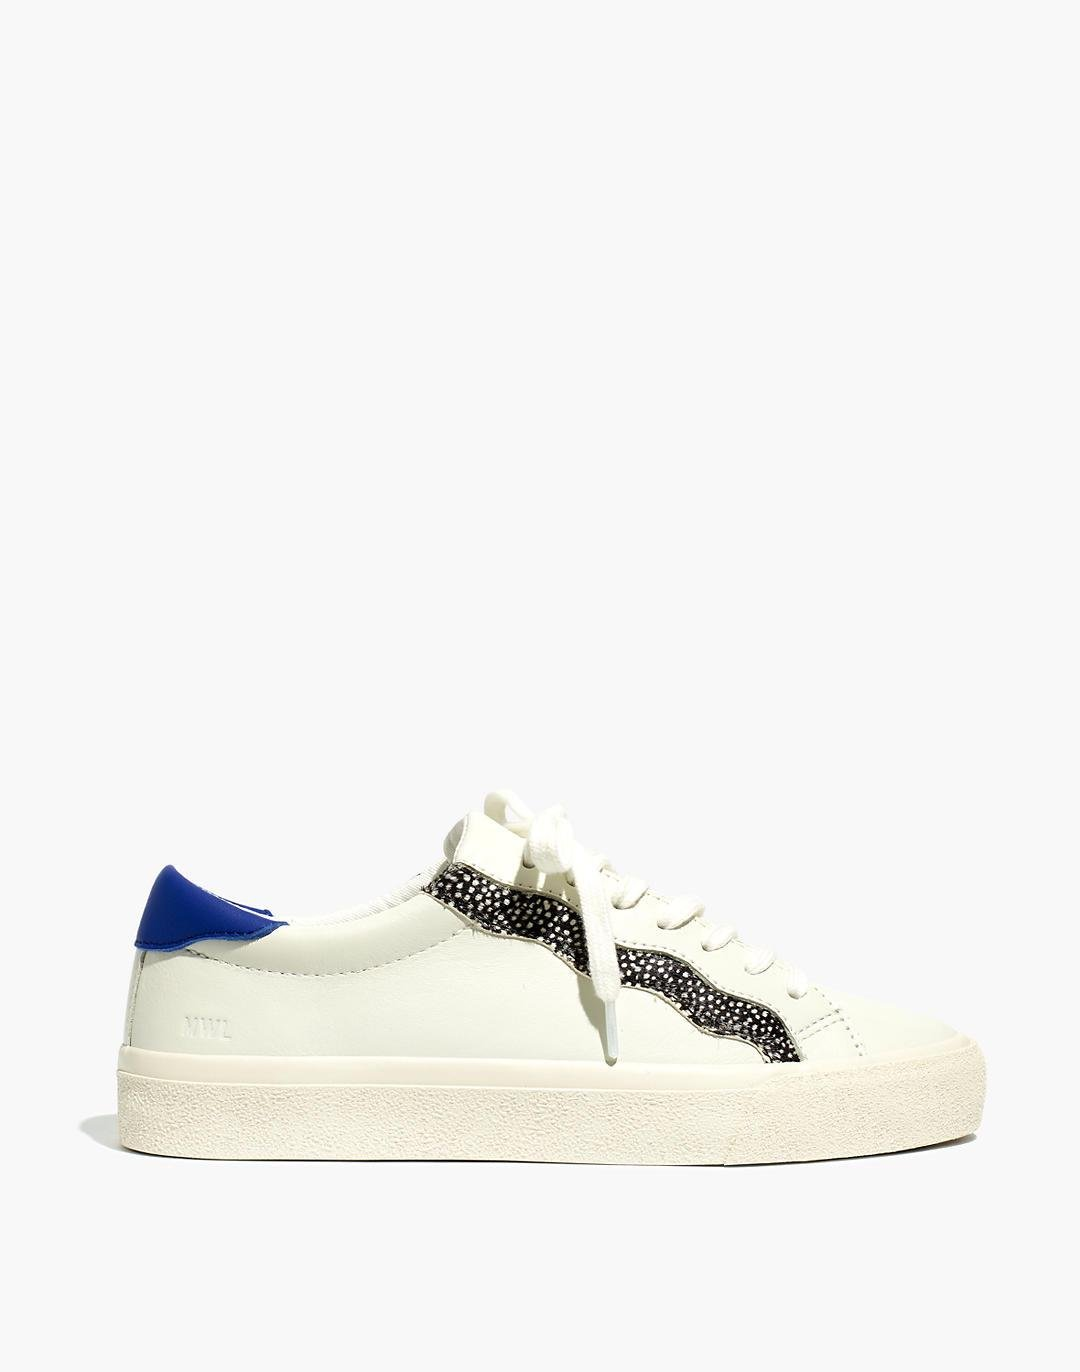 Sidewalk Low-Top Sneakers in Leather and Calf Hair: Wave Edition 1